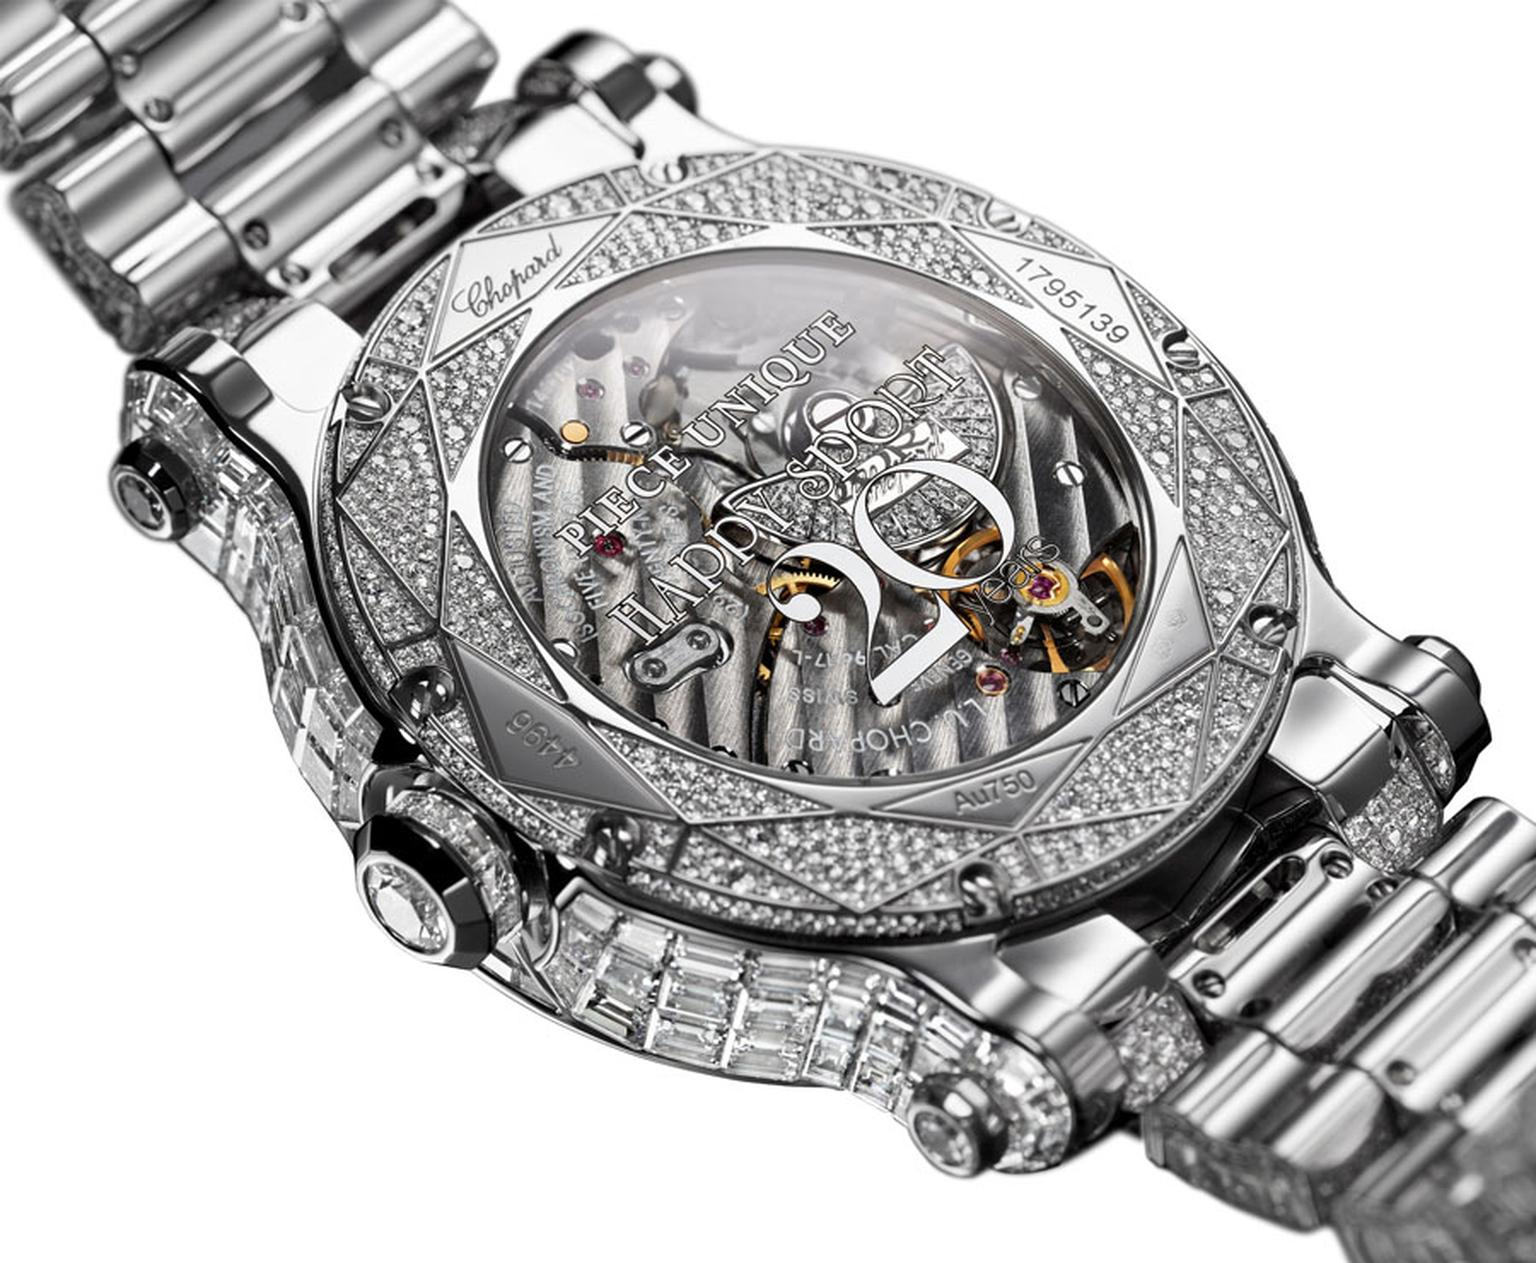 ChopardHappySport1